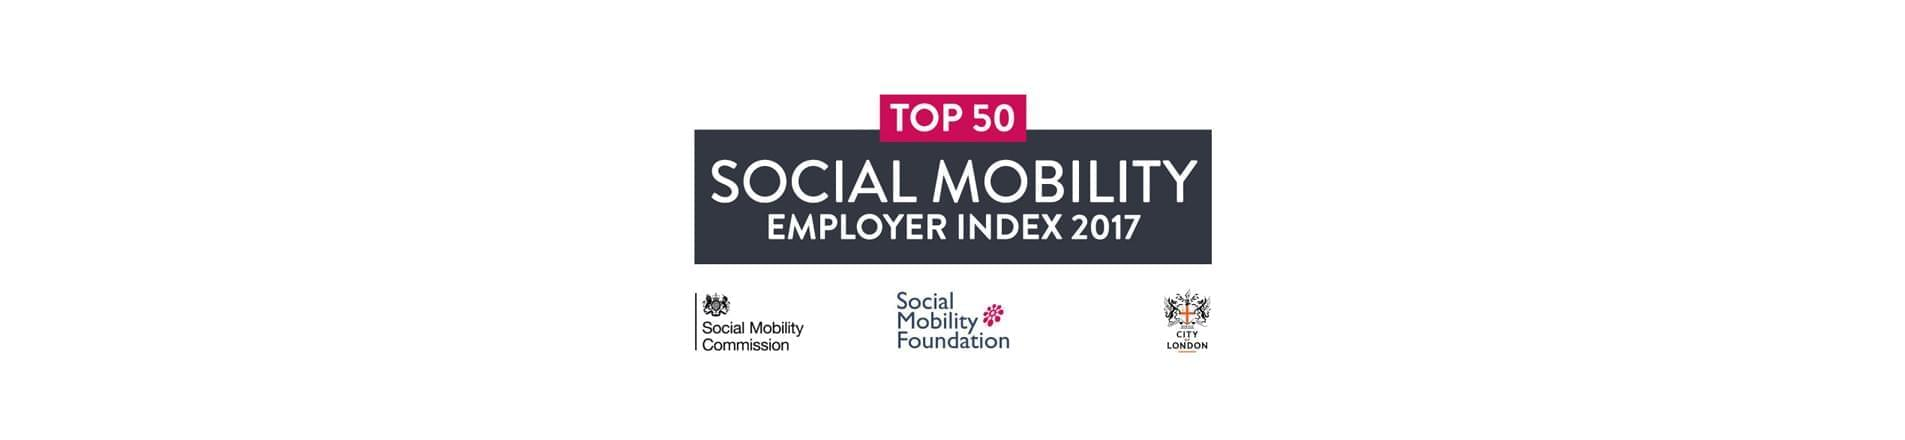 Social Mobility Employer Index 2017 Top 50 logo with Social Mobility Foundation, Social Mobility Commission and City of London logos